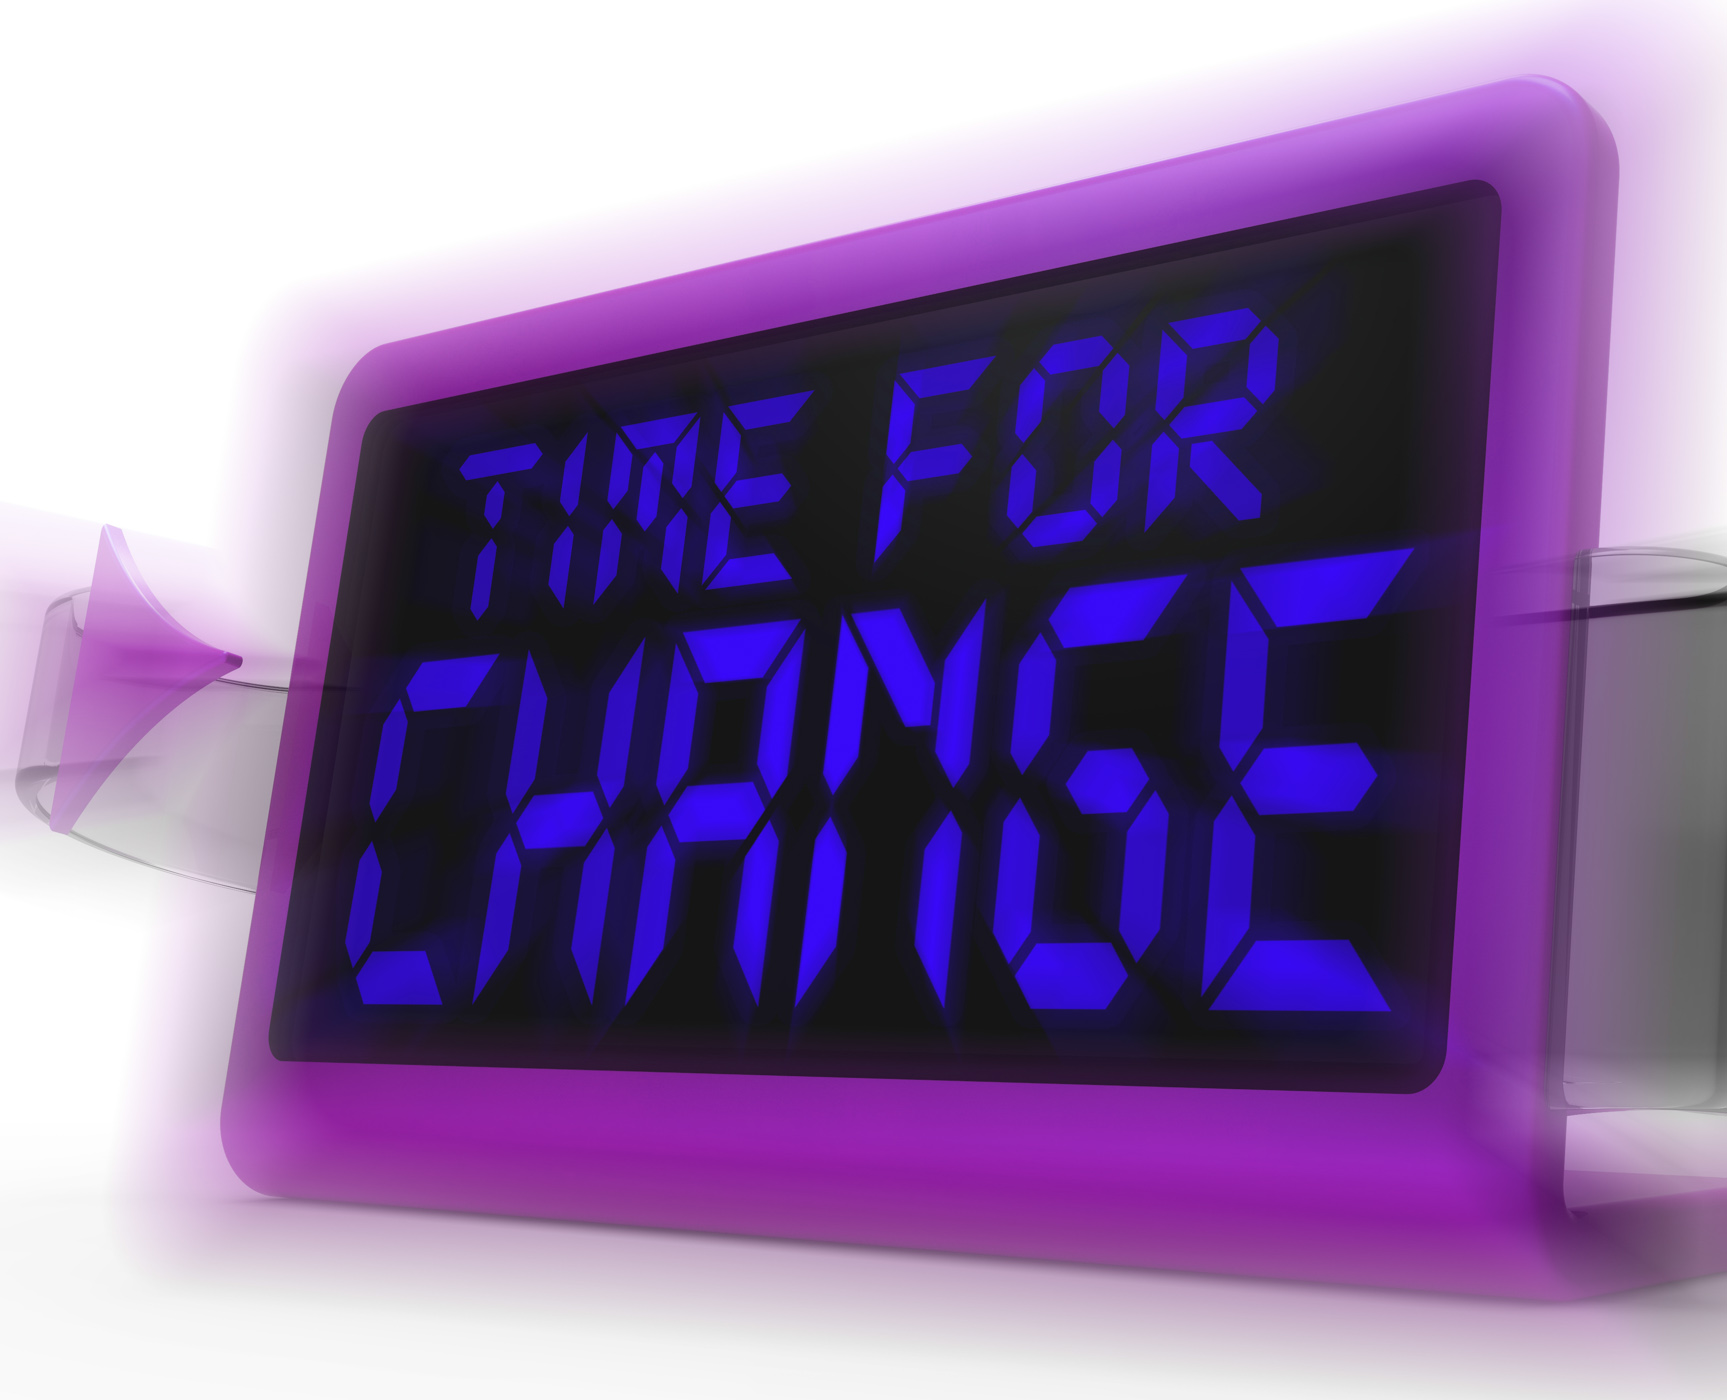 Time for change digital clock shows revision new strategy and goals photo